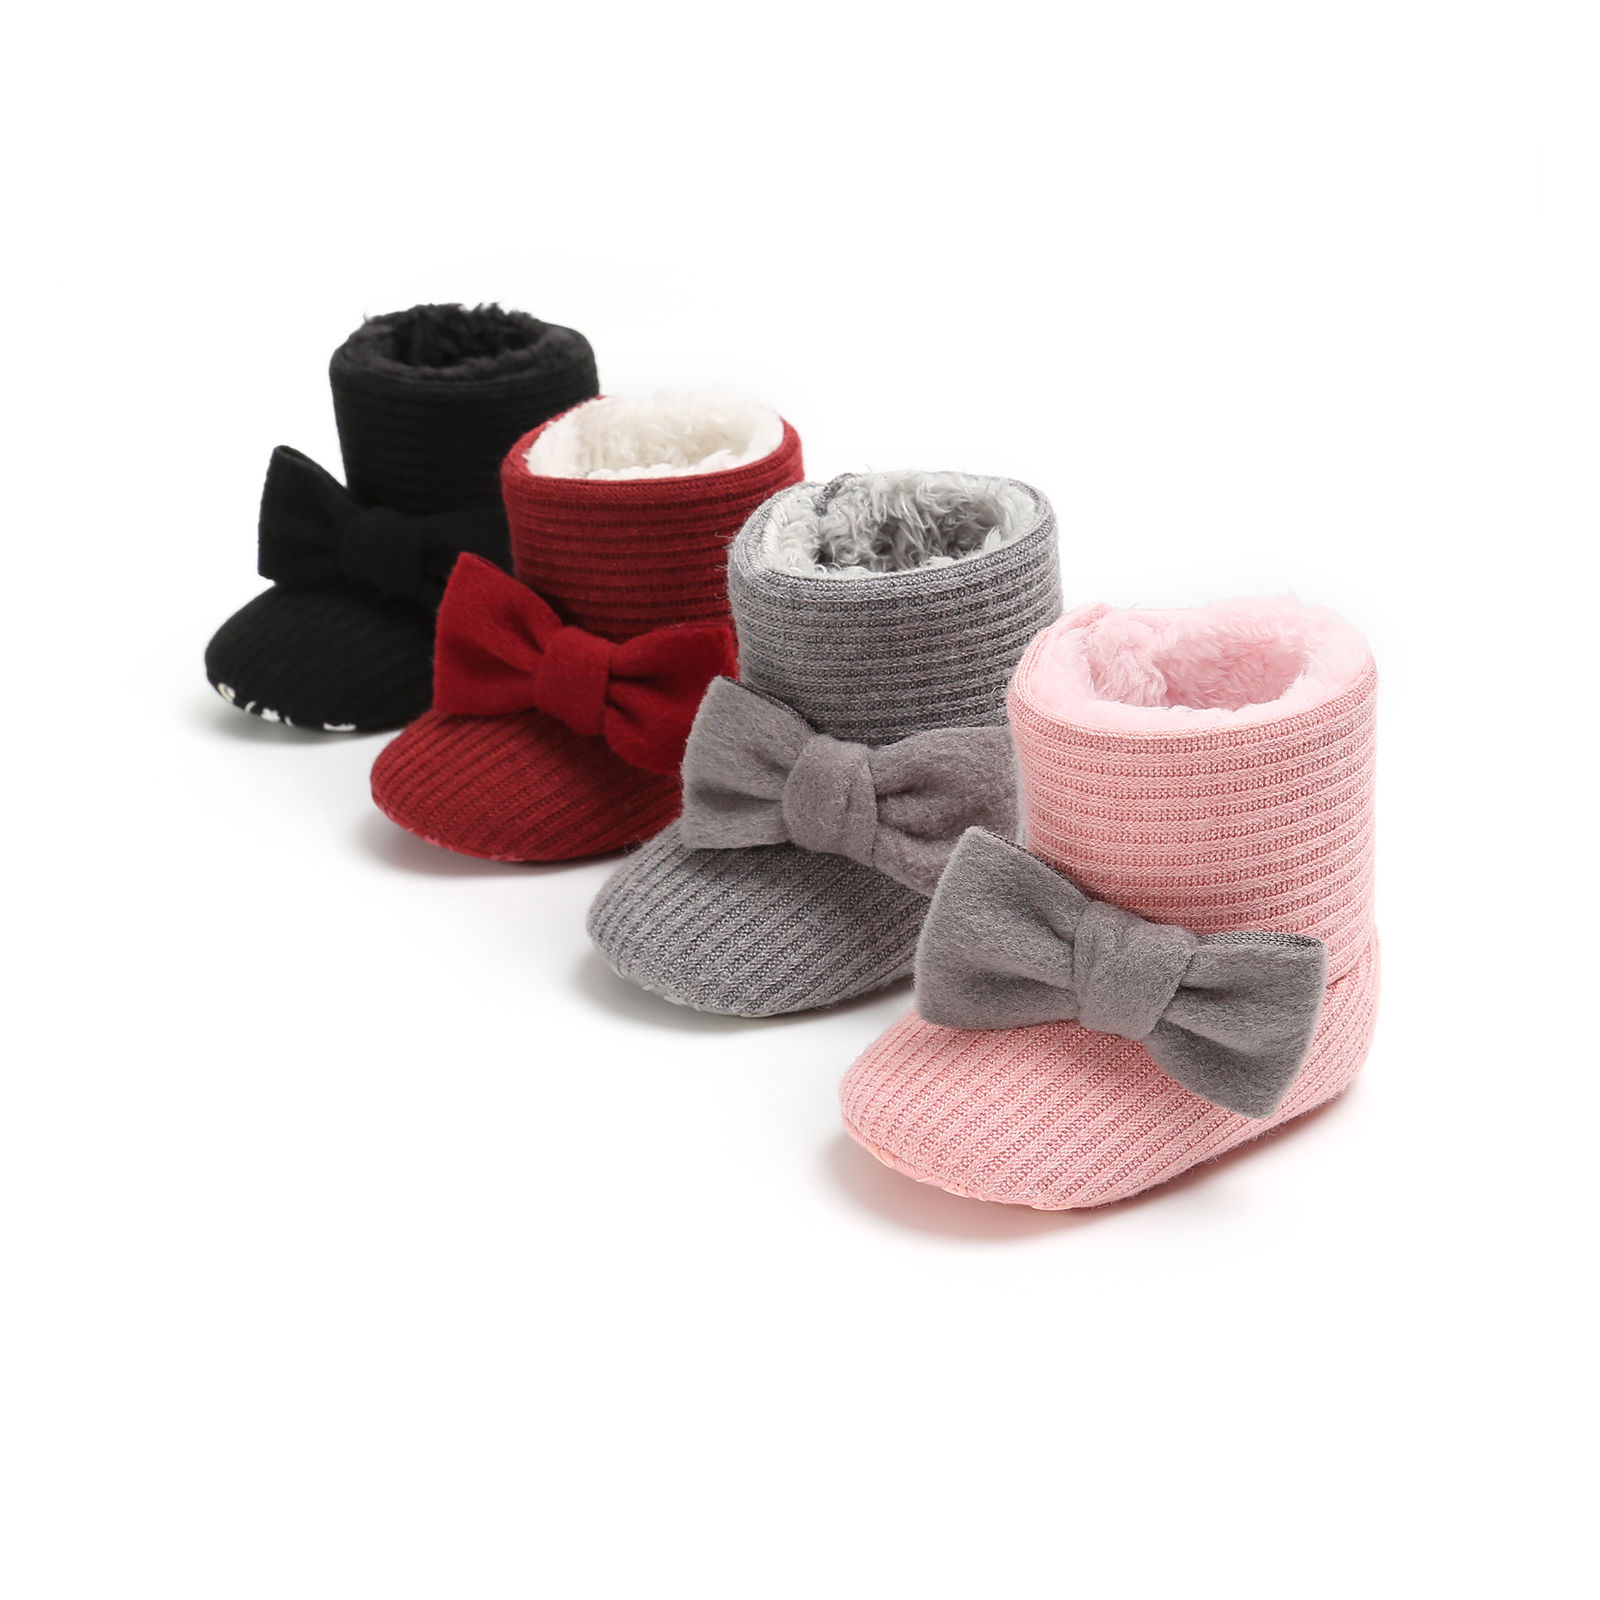 Baby Girl Boy Winter Warm Snow Boots Booties Toddler Newborn Crib Shoes 0-18M